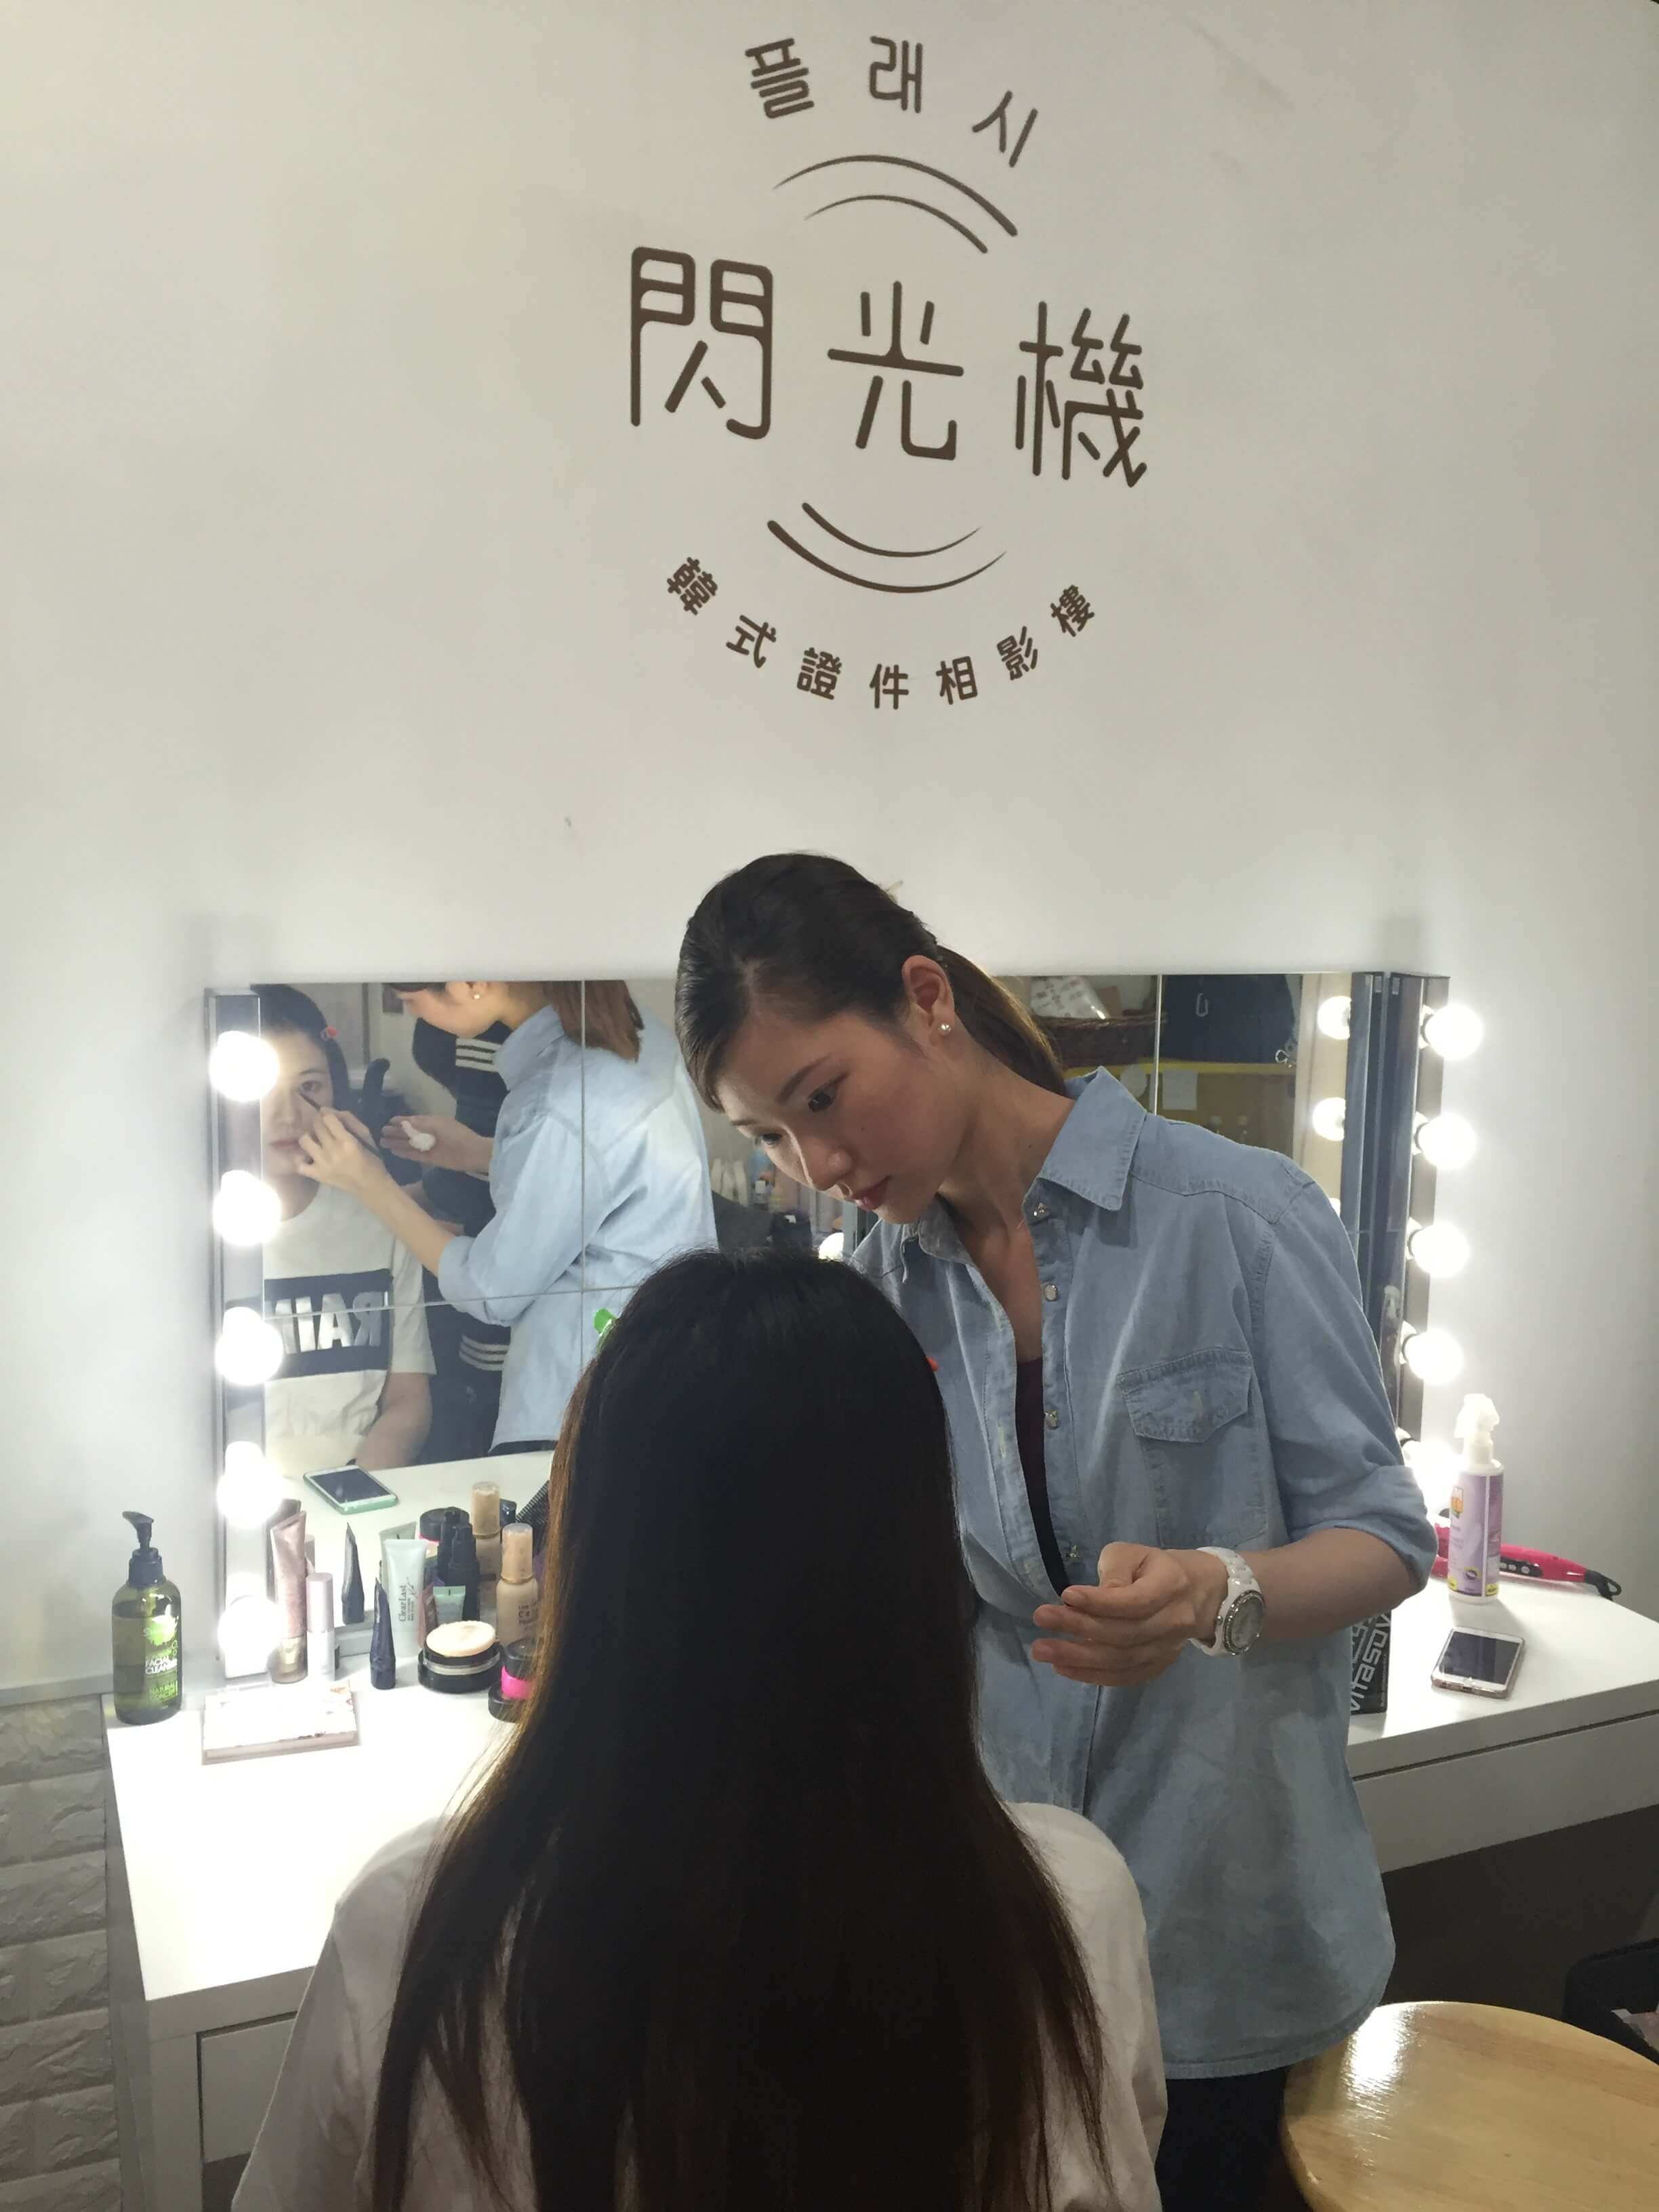 Mandy's shop provides professional make up service before shooting. It attracts many customers, especially girls in their 20s.